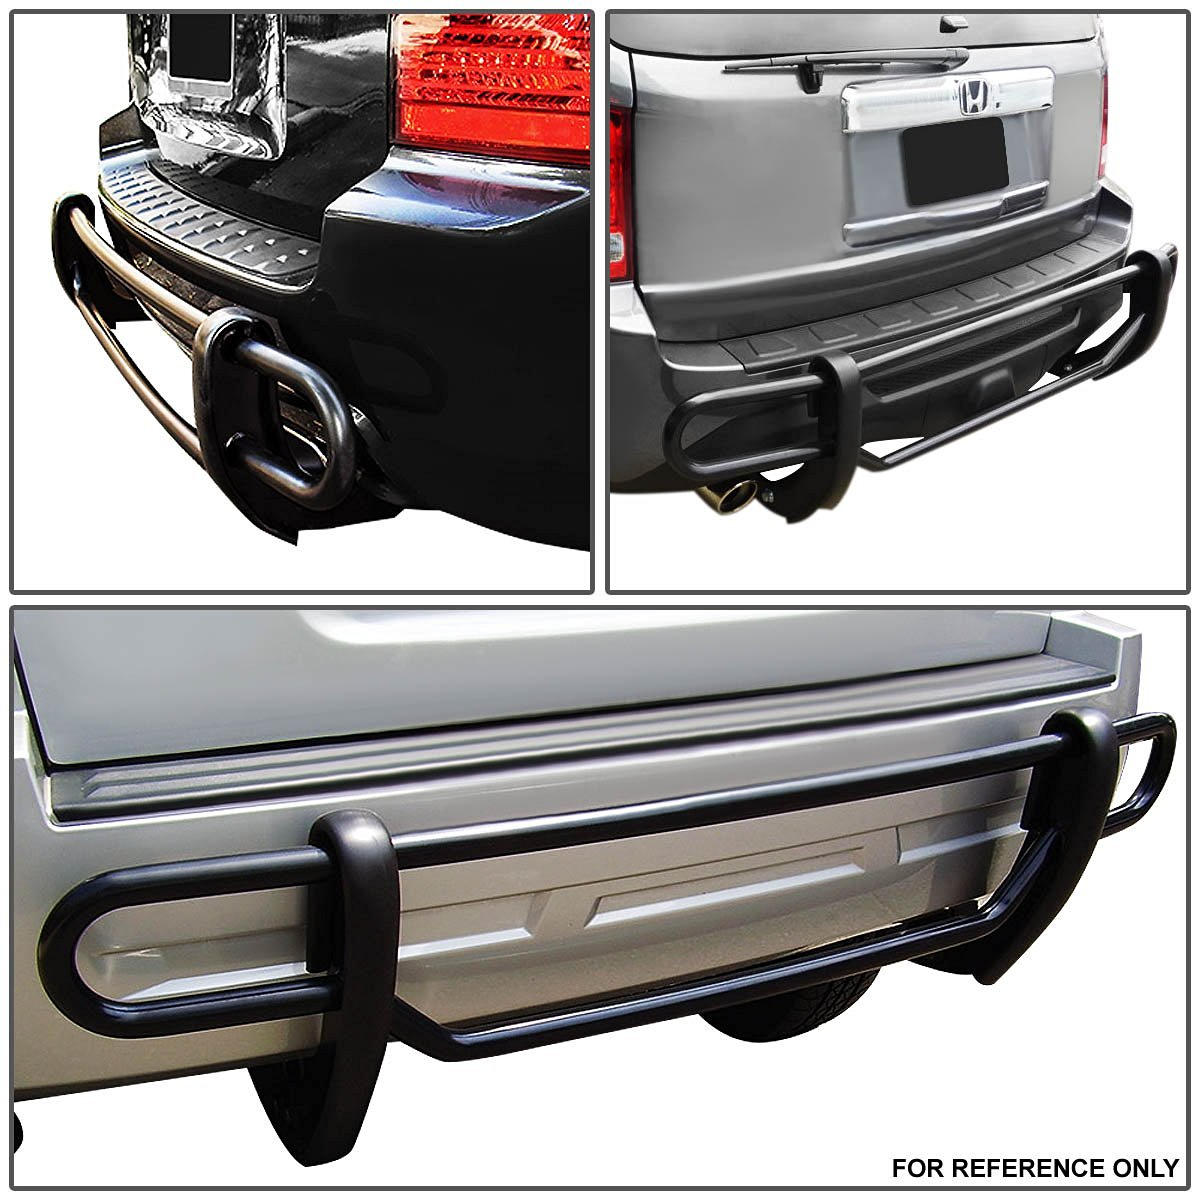 08 12 ford escape tribute stainless steel double bar rear bumper protector guard black